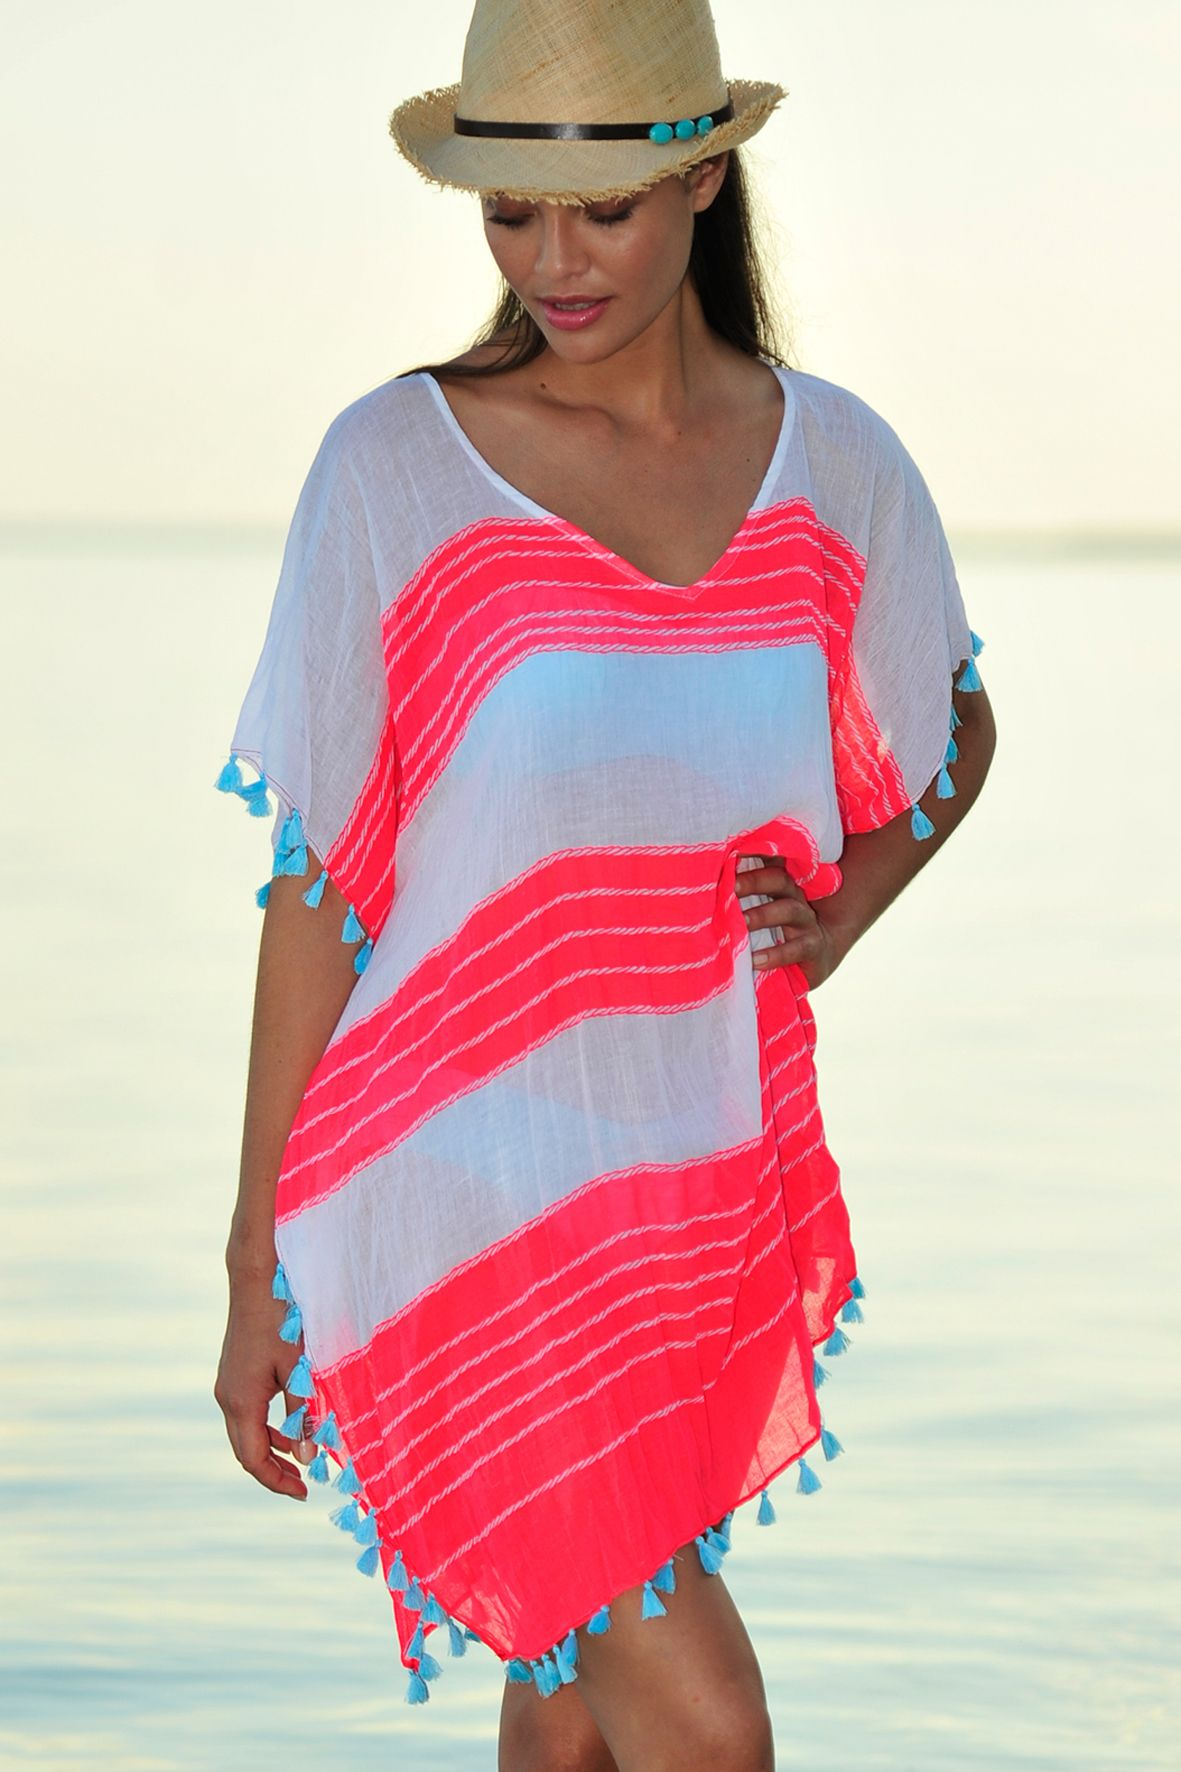 4c2646f83a3 Seafolly Coastline Cable Kaftan in Red Hot. #seafolly #kaftan #neon #redhot